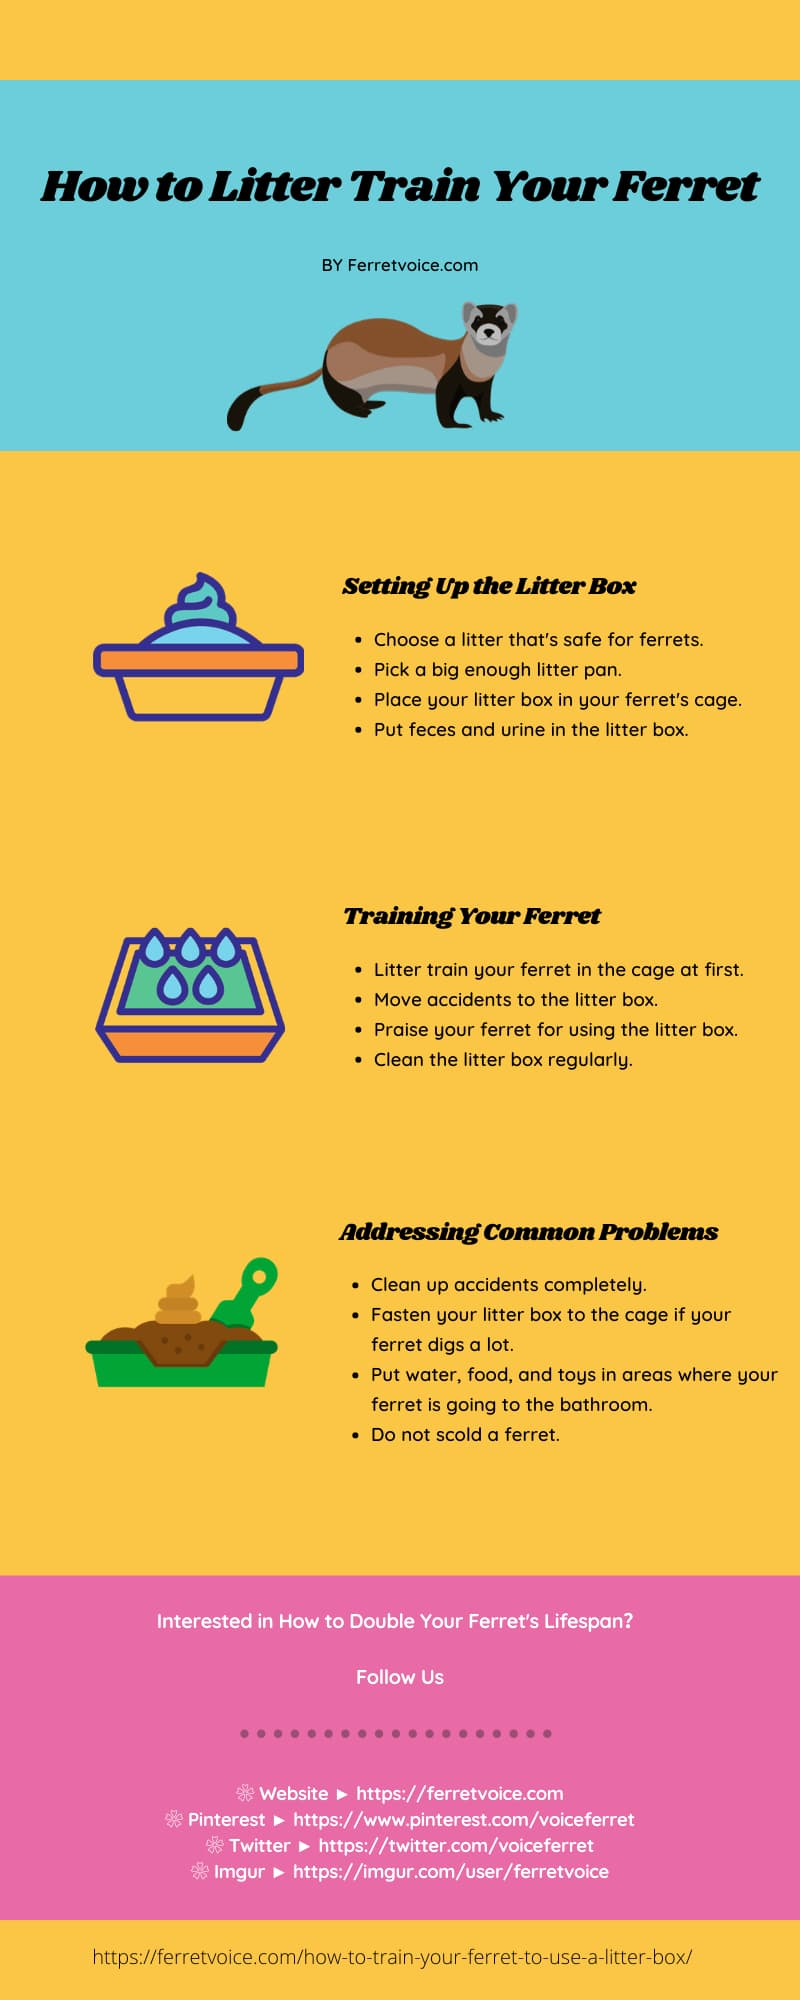 How to Litter Train Your Ferret Infographic